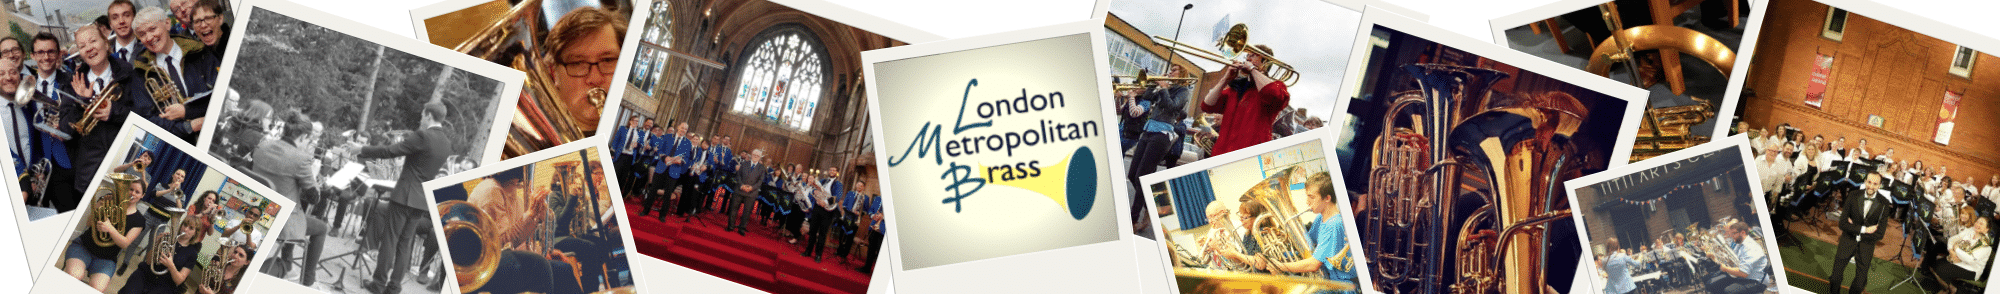 London Metropolitan Brass